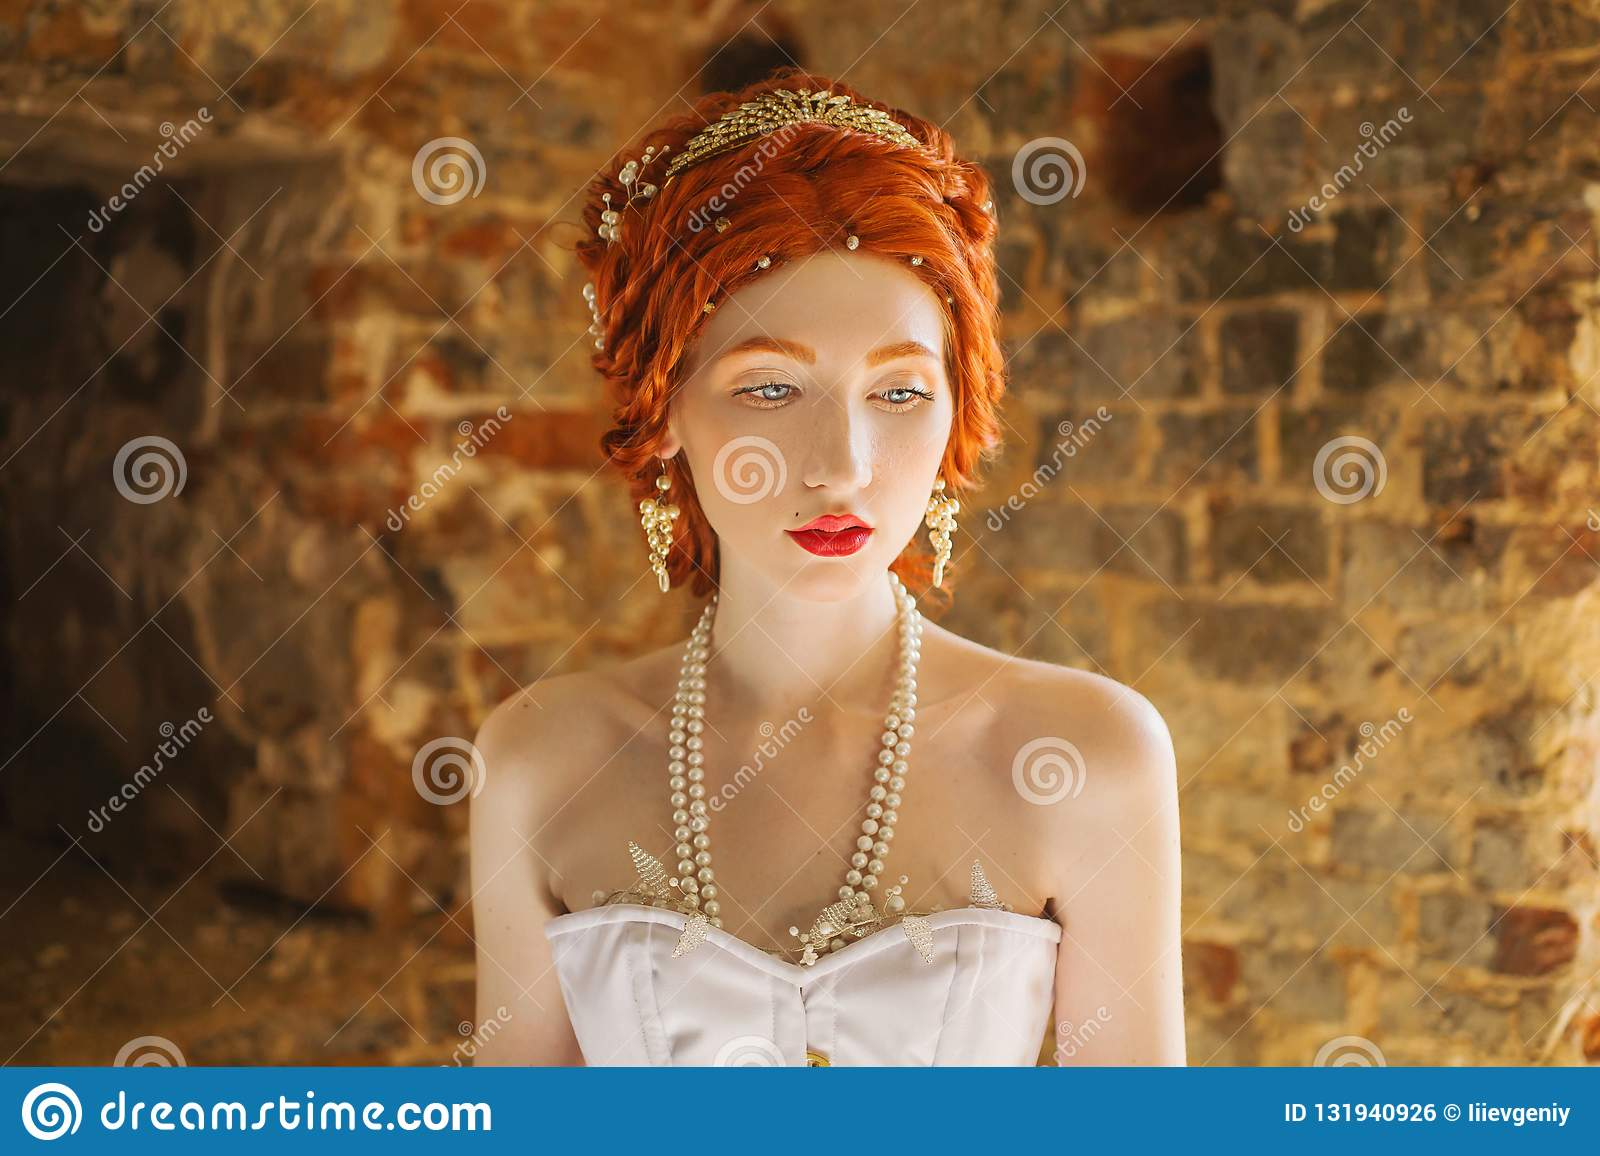 e2326903216 Fairy edwardian redhead princess with freckles in the old castle. Fabulous  rococo queen against backdrop of stone wall. Edwardian doll.